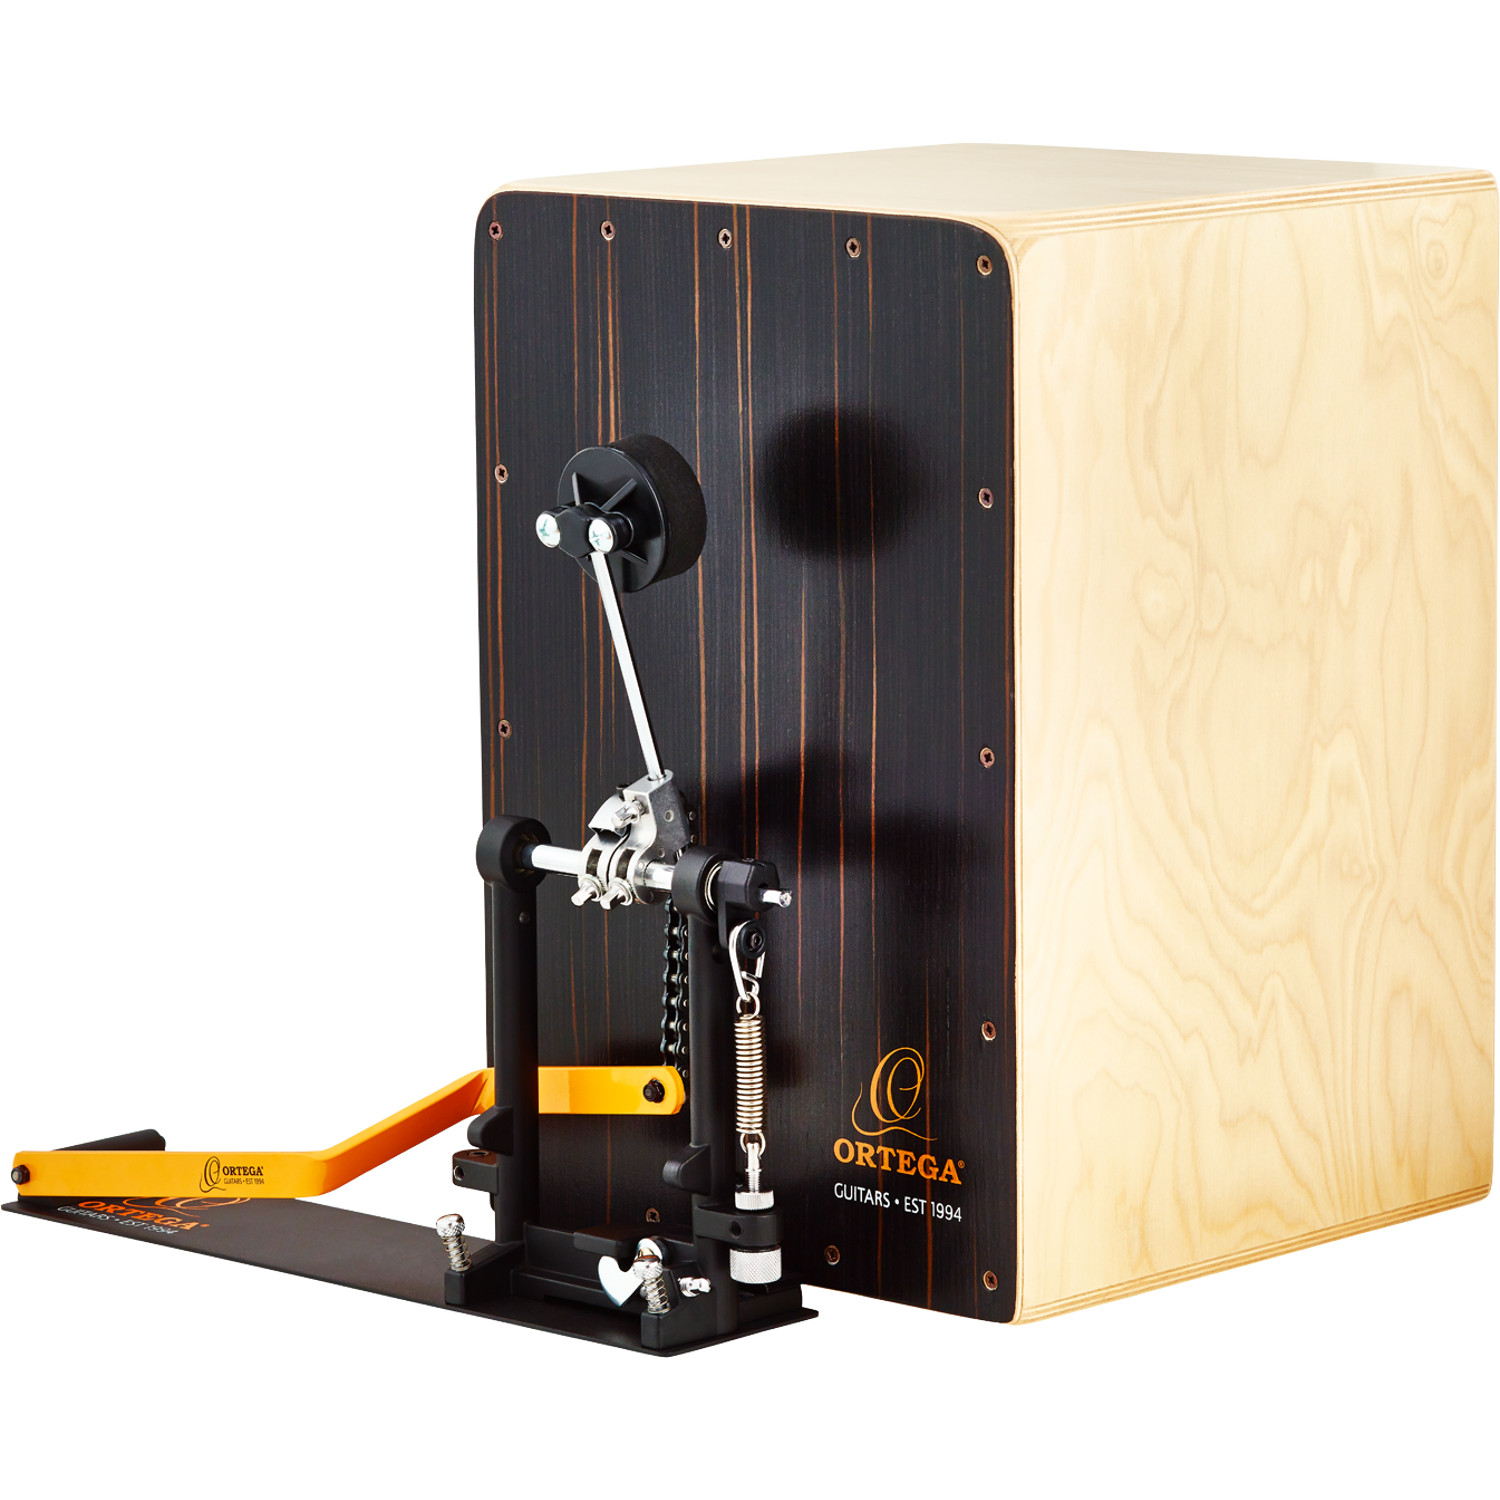 Ortega OSTBCJ BU Stomp Box Cajon bundle, right footed